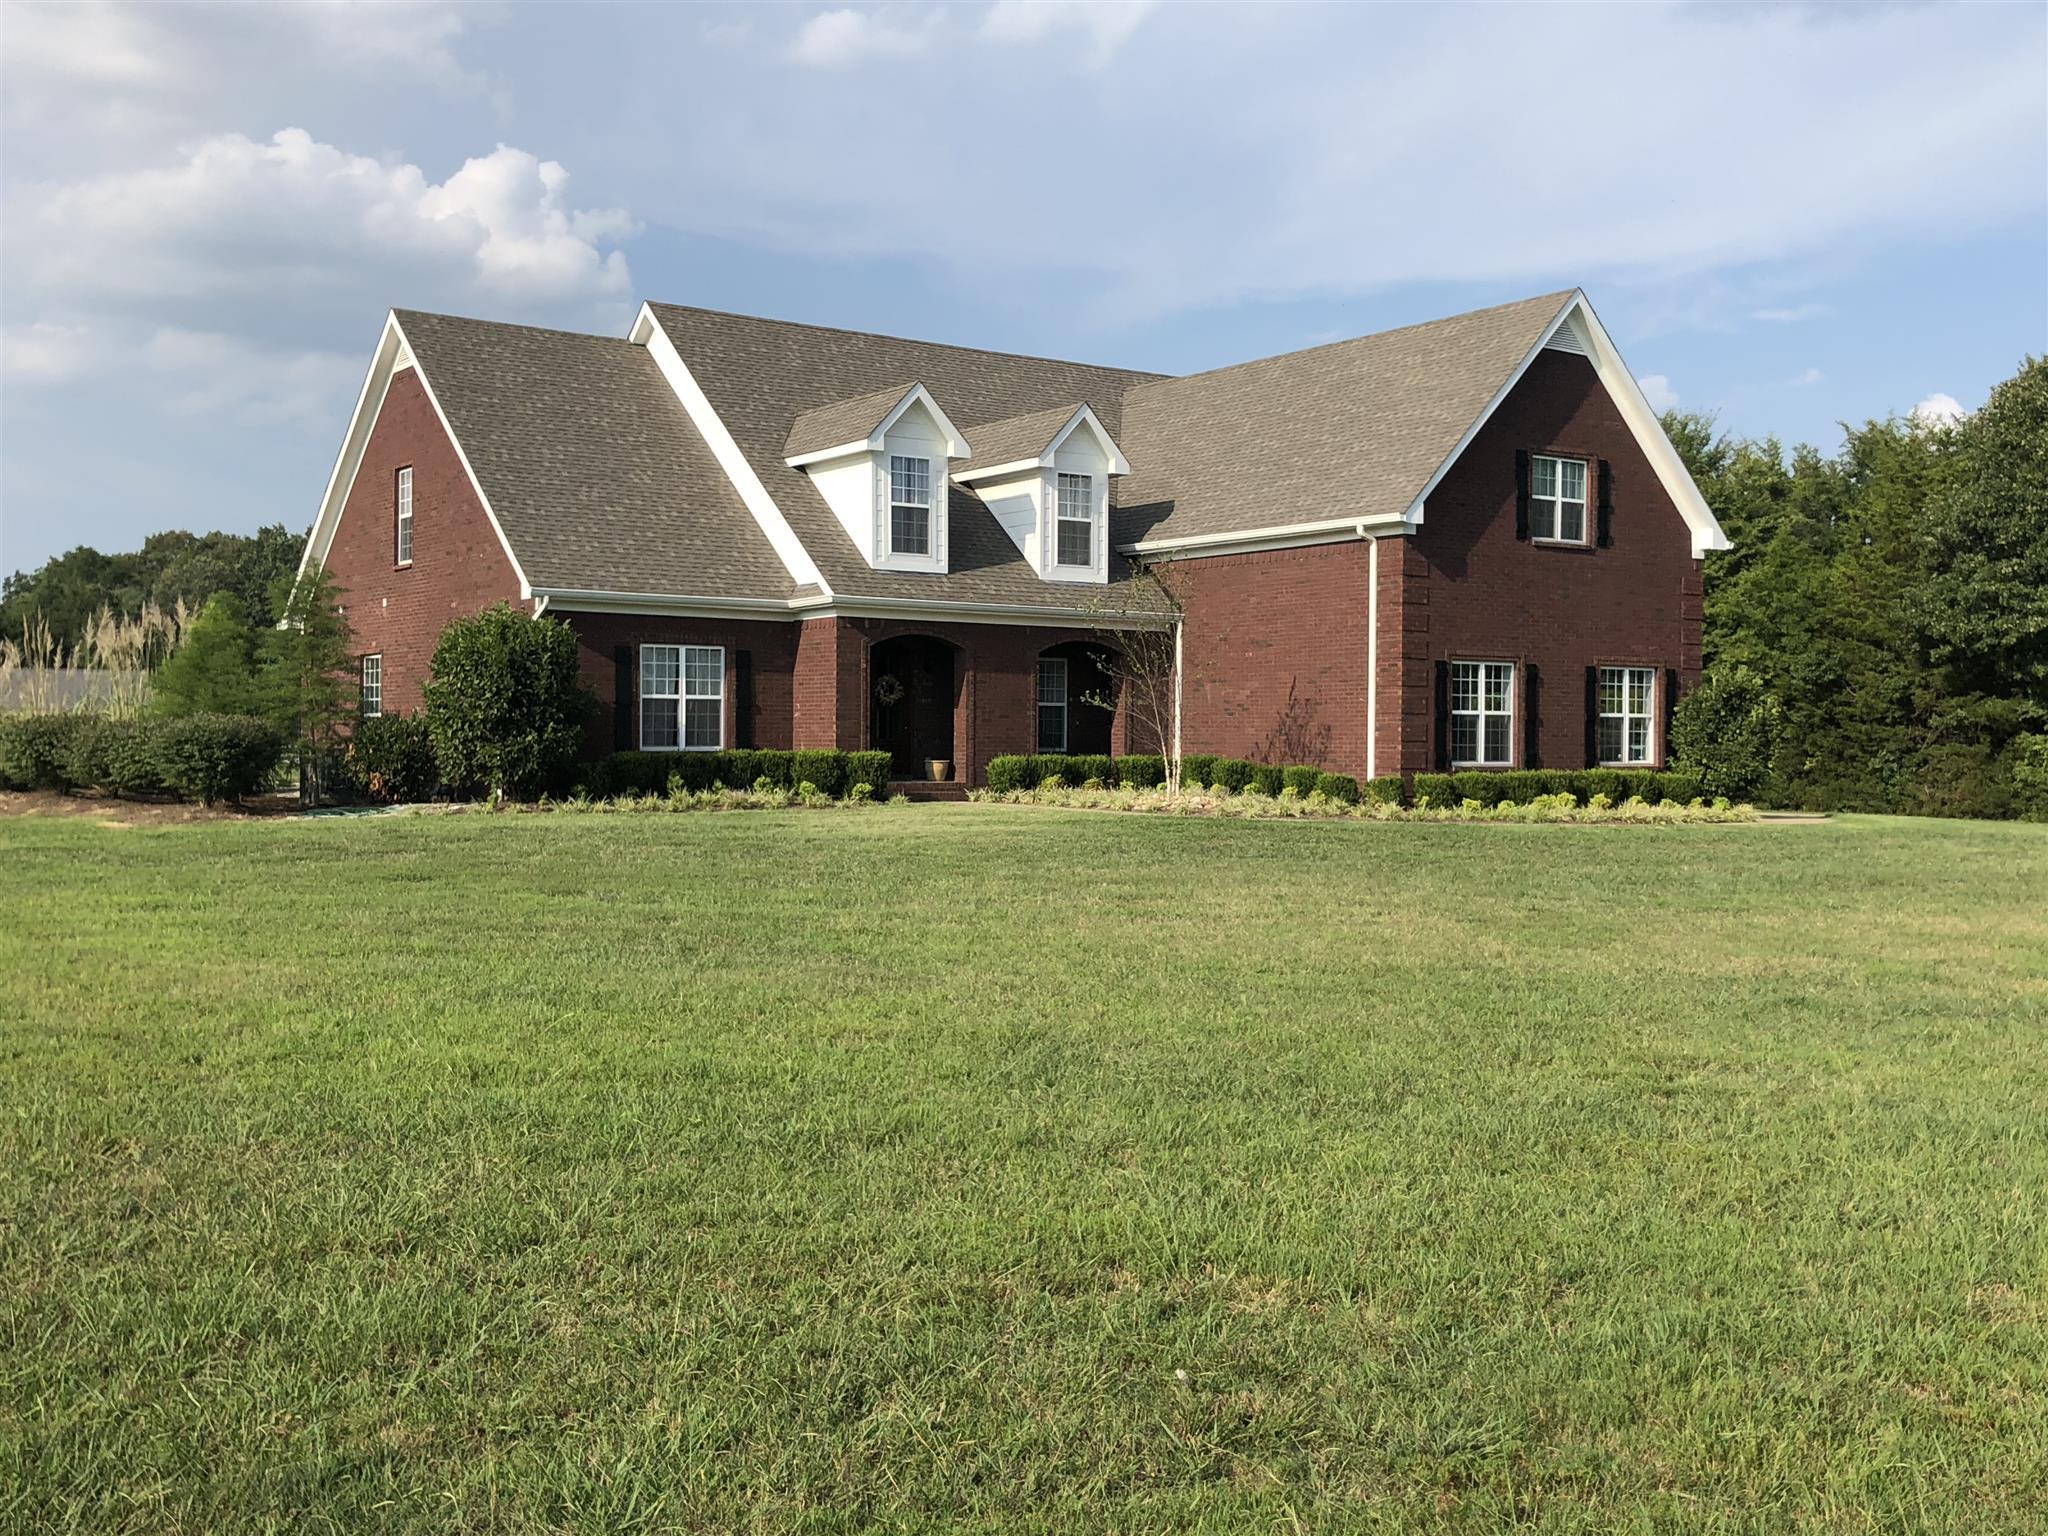 214 Steelson Way, Murfreesboro, TN 37128 - Murfreesboro, TN real estate listing